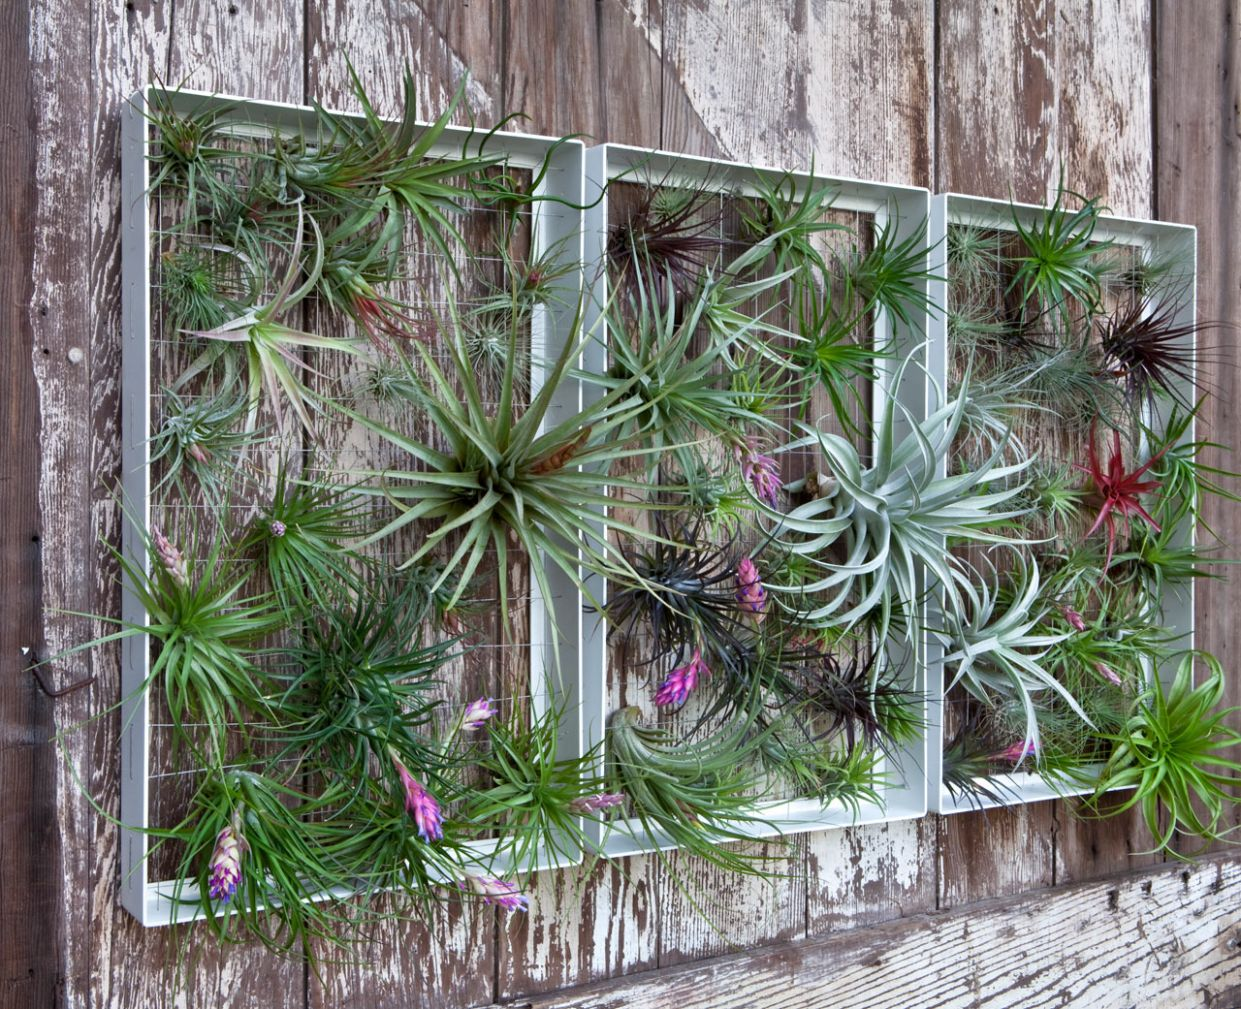 Living Wall Art Vertical Garden Frames by Airplantman - Design Milk